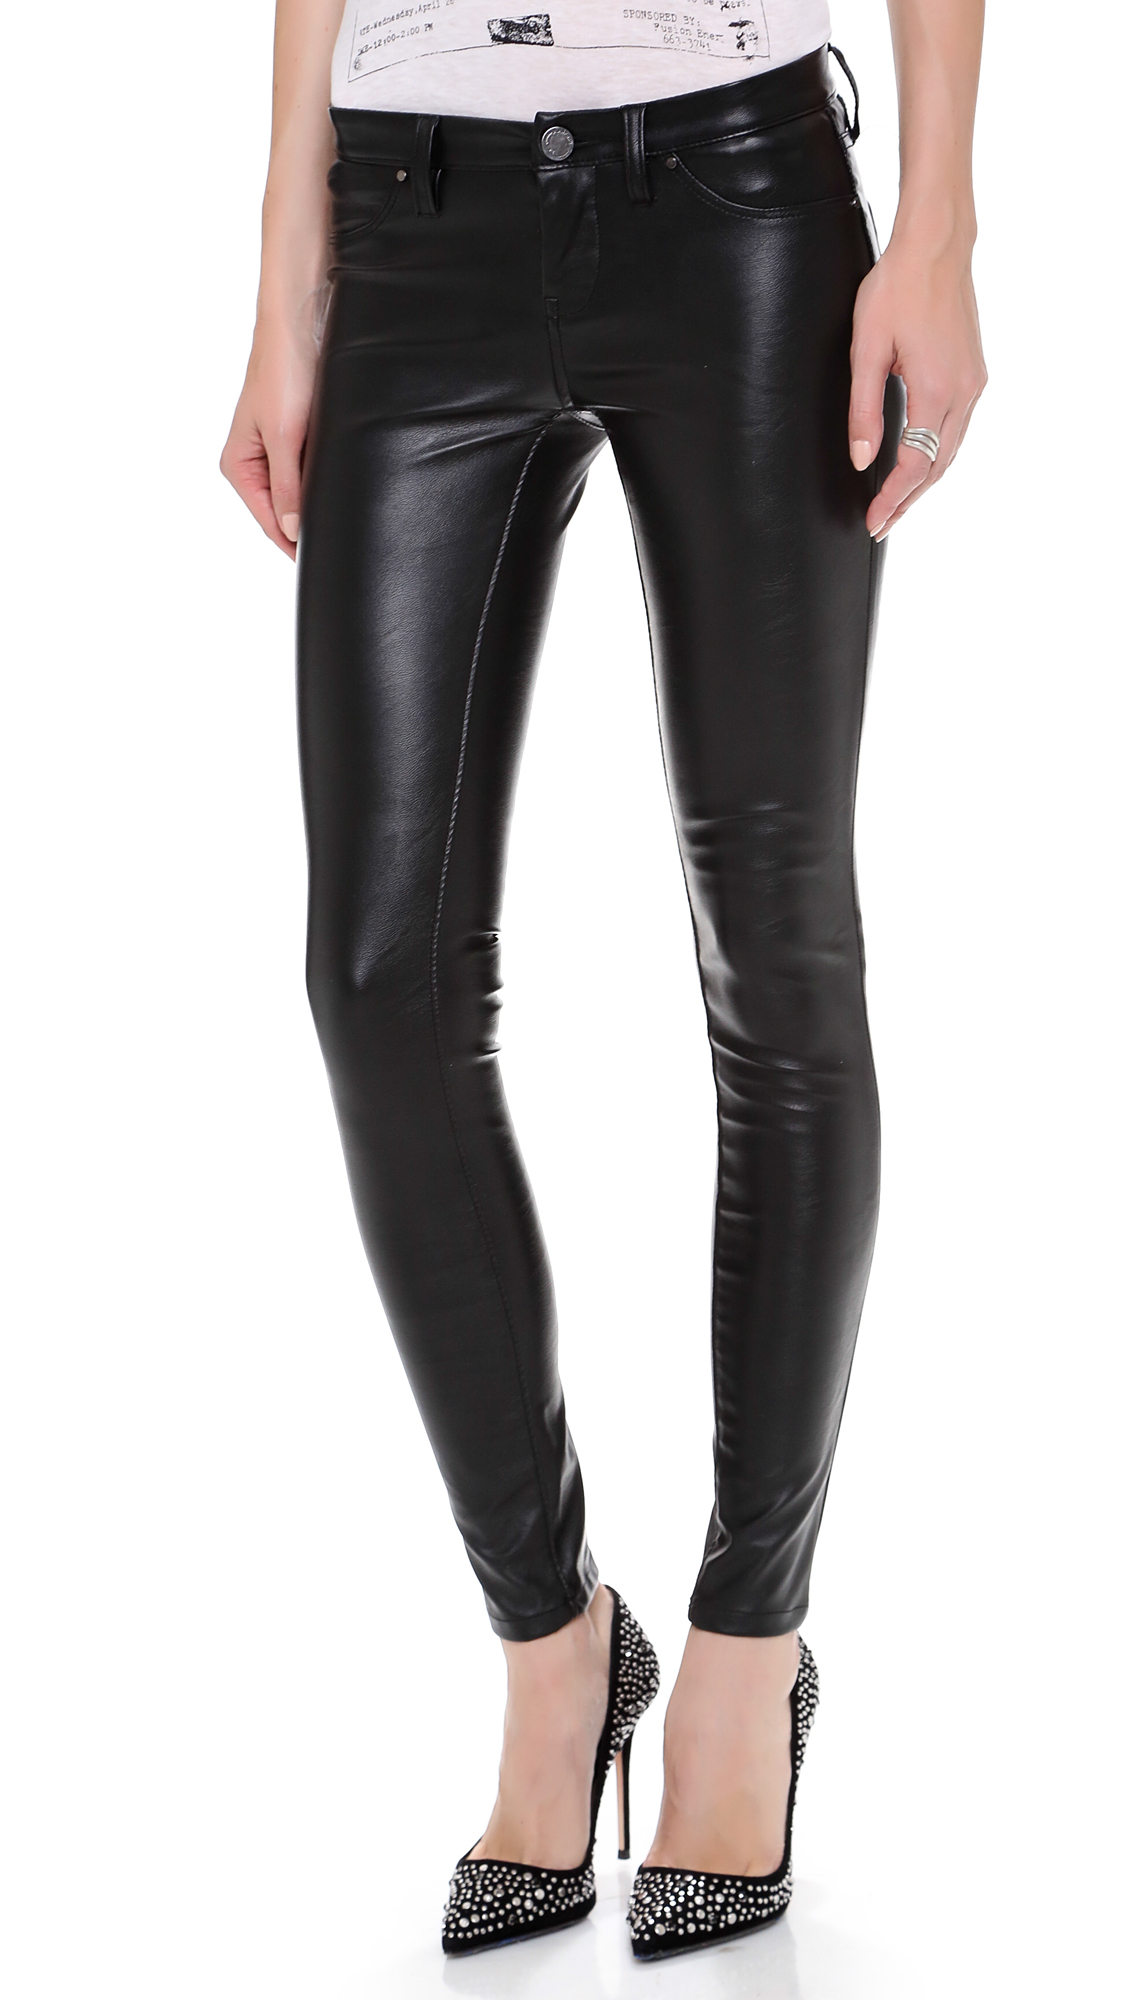 Serve up a sassy look with the LOST INK Kassidy Black Vegan Leather Pants! These sleek, vegan leather pants strike a perfect balance between chic and edgy with their skinny pant legs, high-waisted fit, and exposed silver side zipper, making them perfect for pairing with band tees, or oversized sweaters.5/5(1).